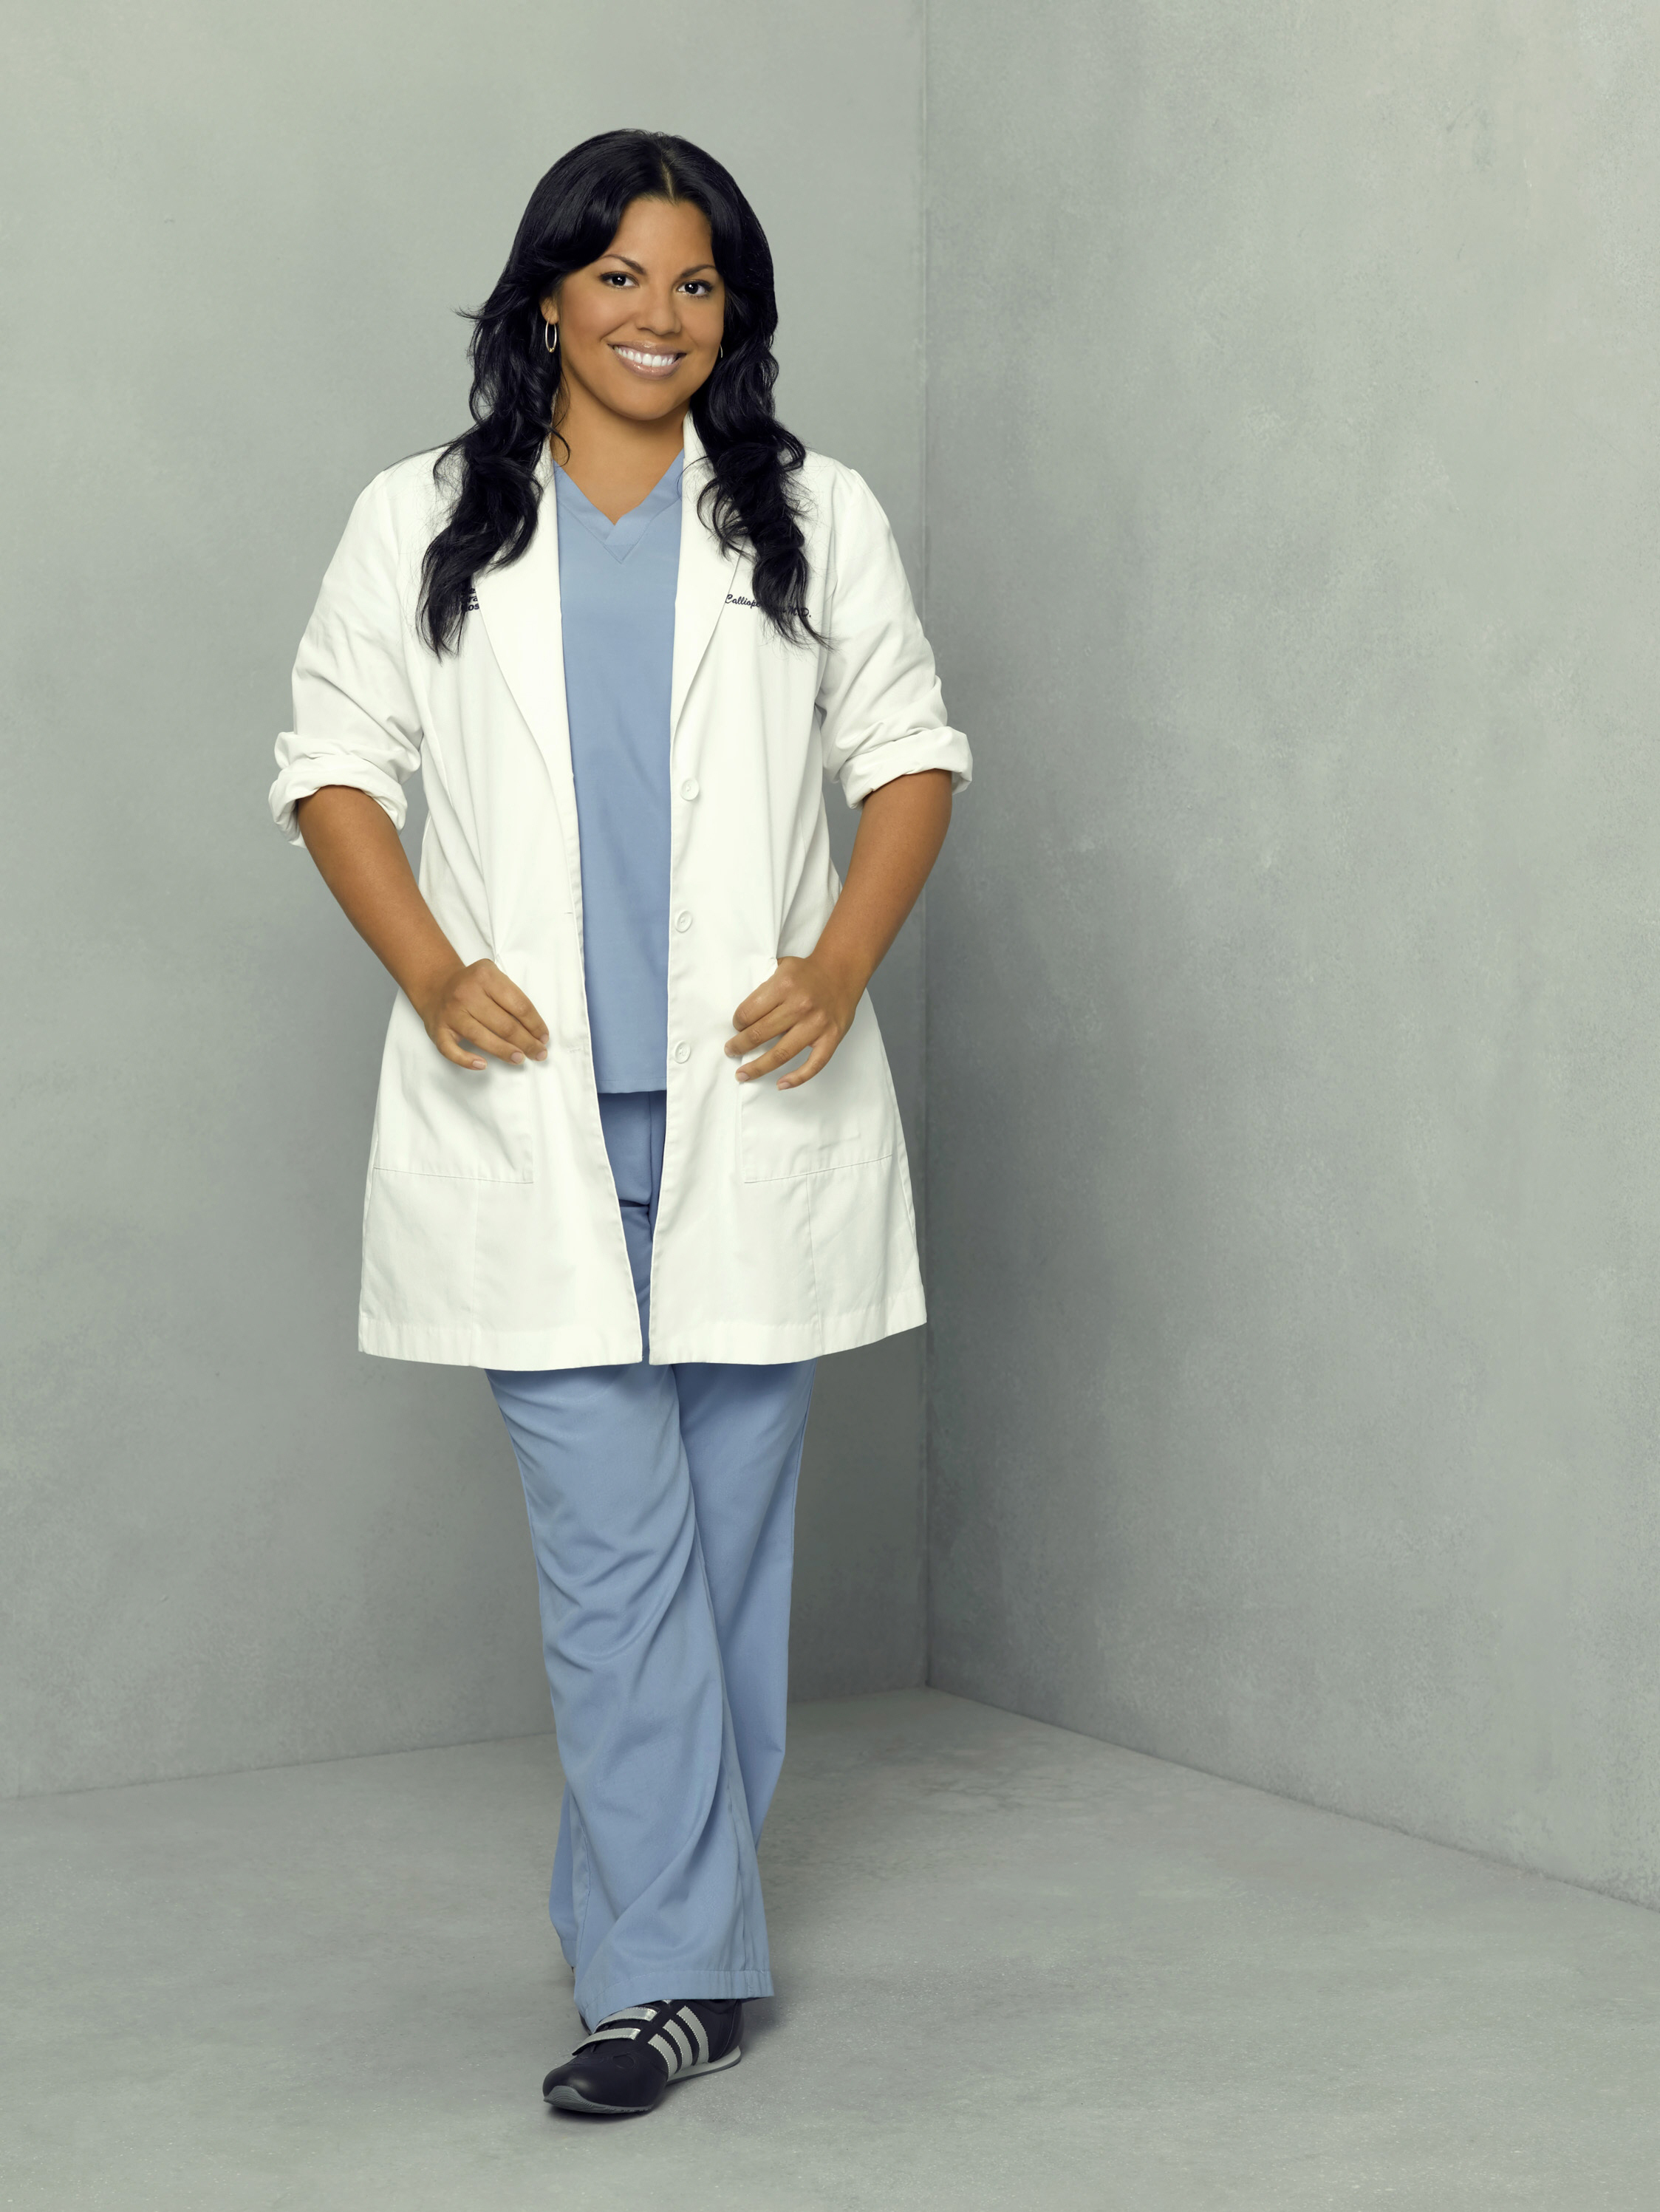 No. 17: Dr. Callie Torres